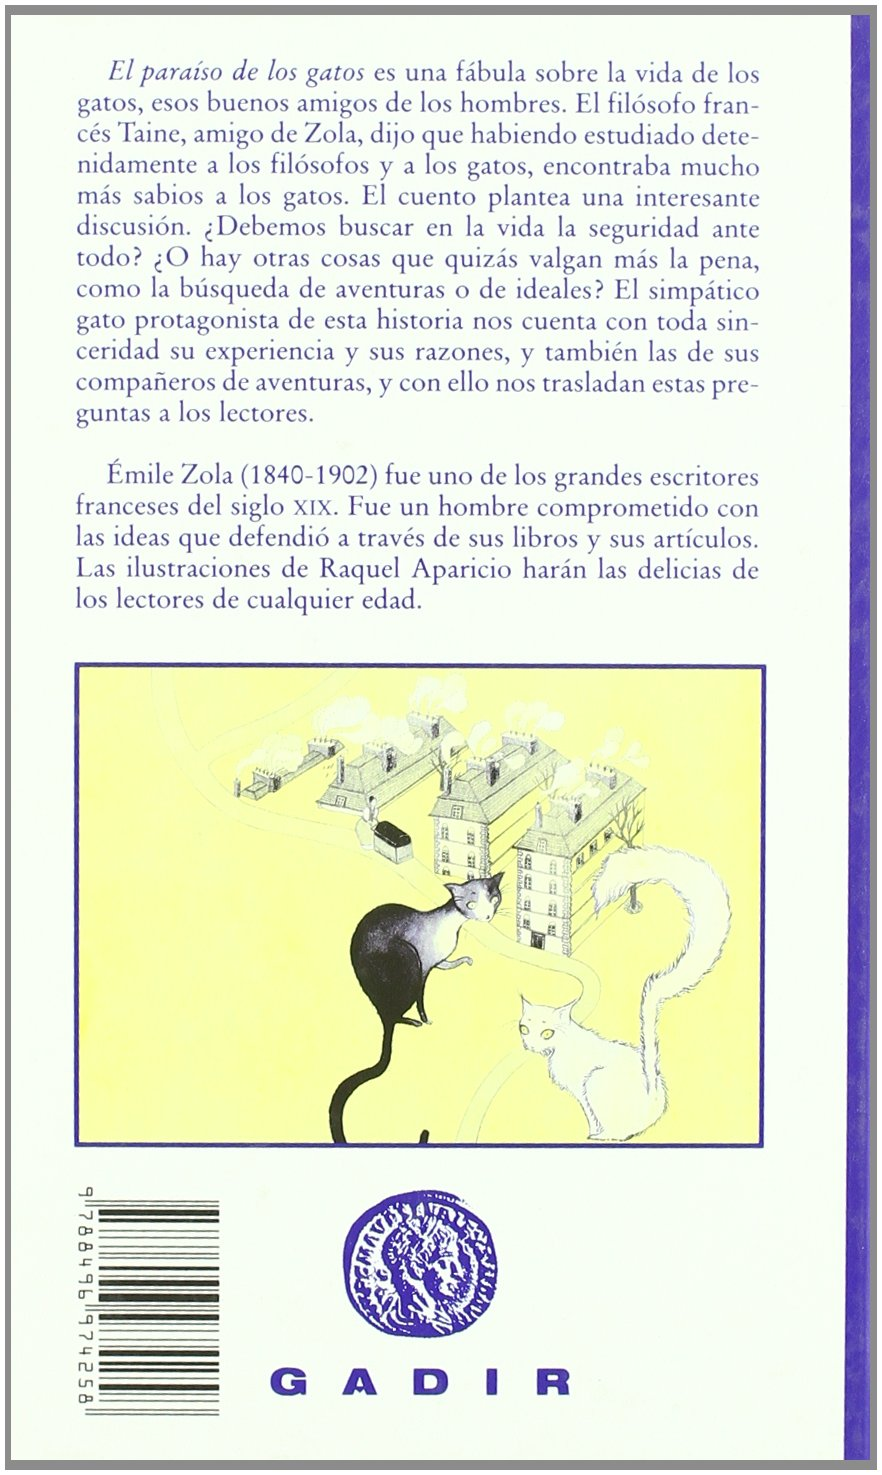 El paraiso de los gatos (El Bosque Viejo) (Spanish Edition): emile Zola: 9788496974258: Amazon.com: Books